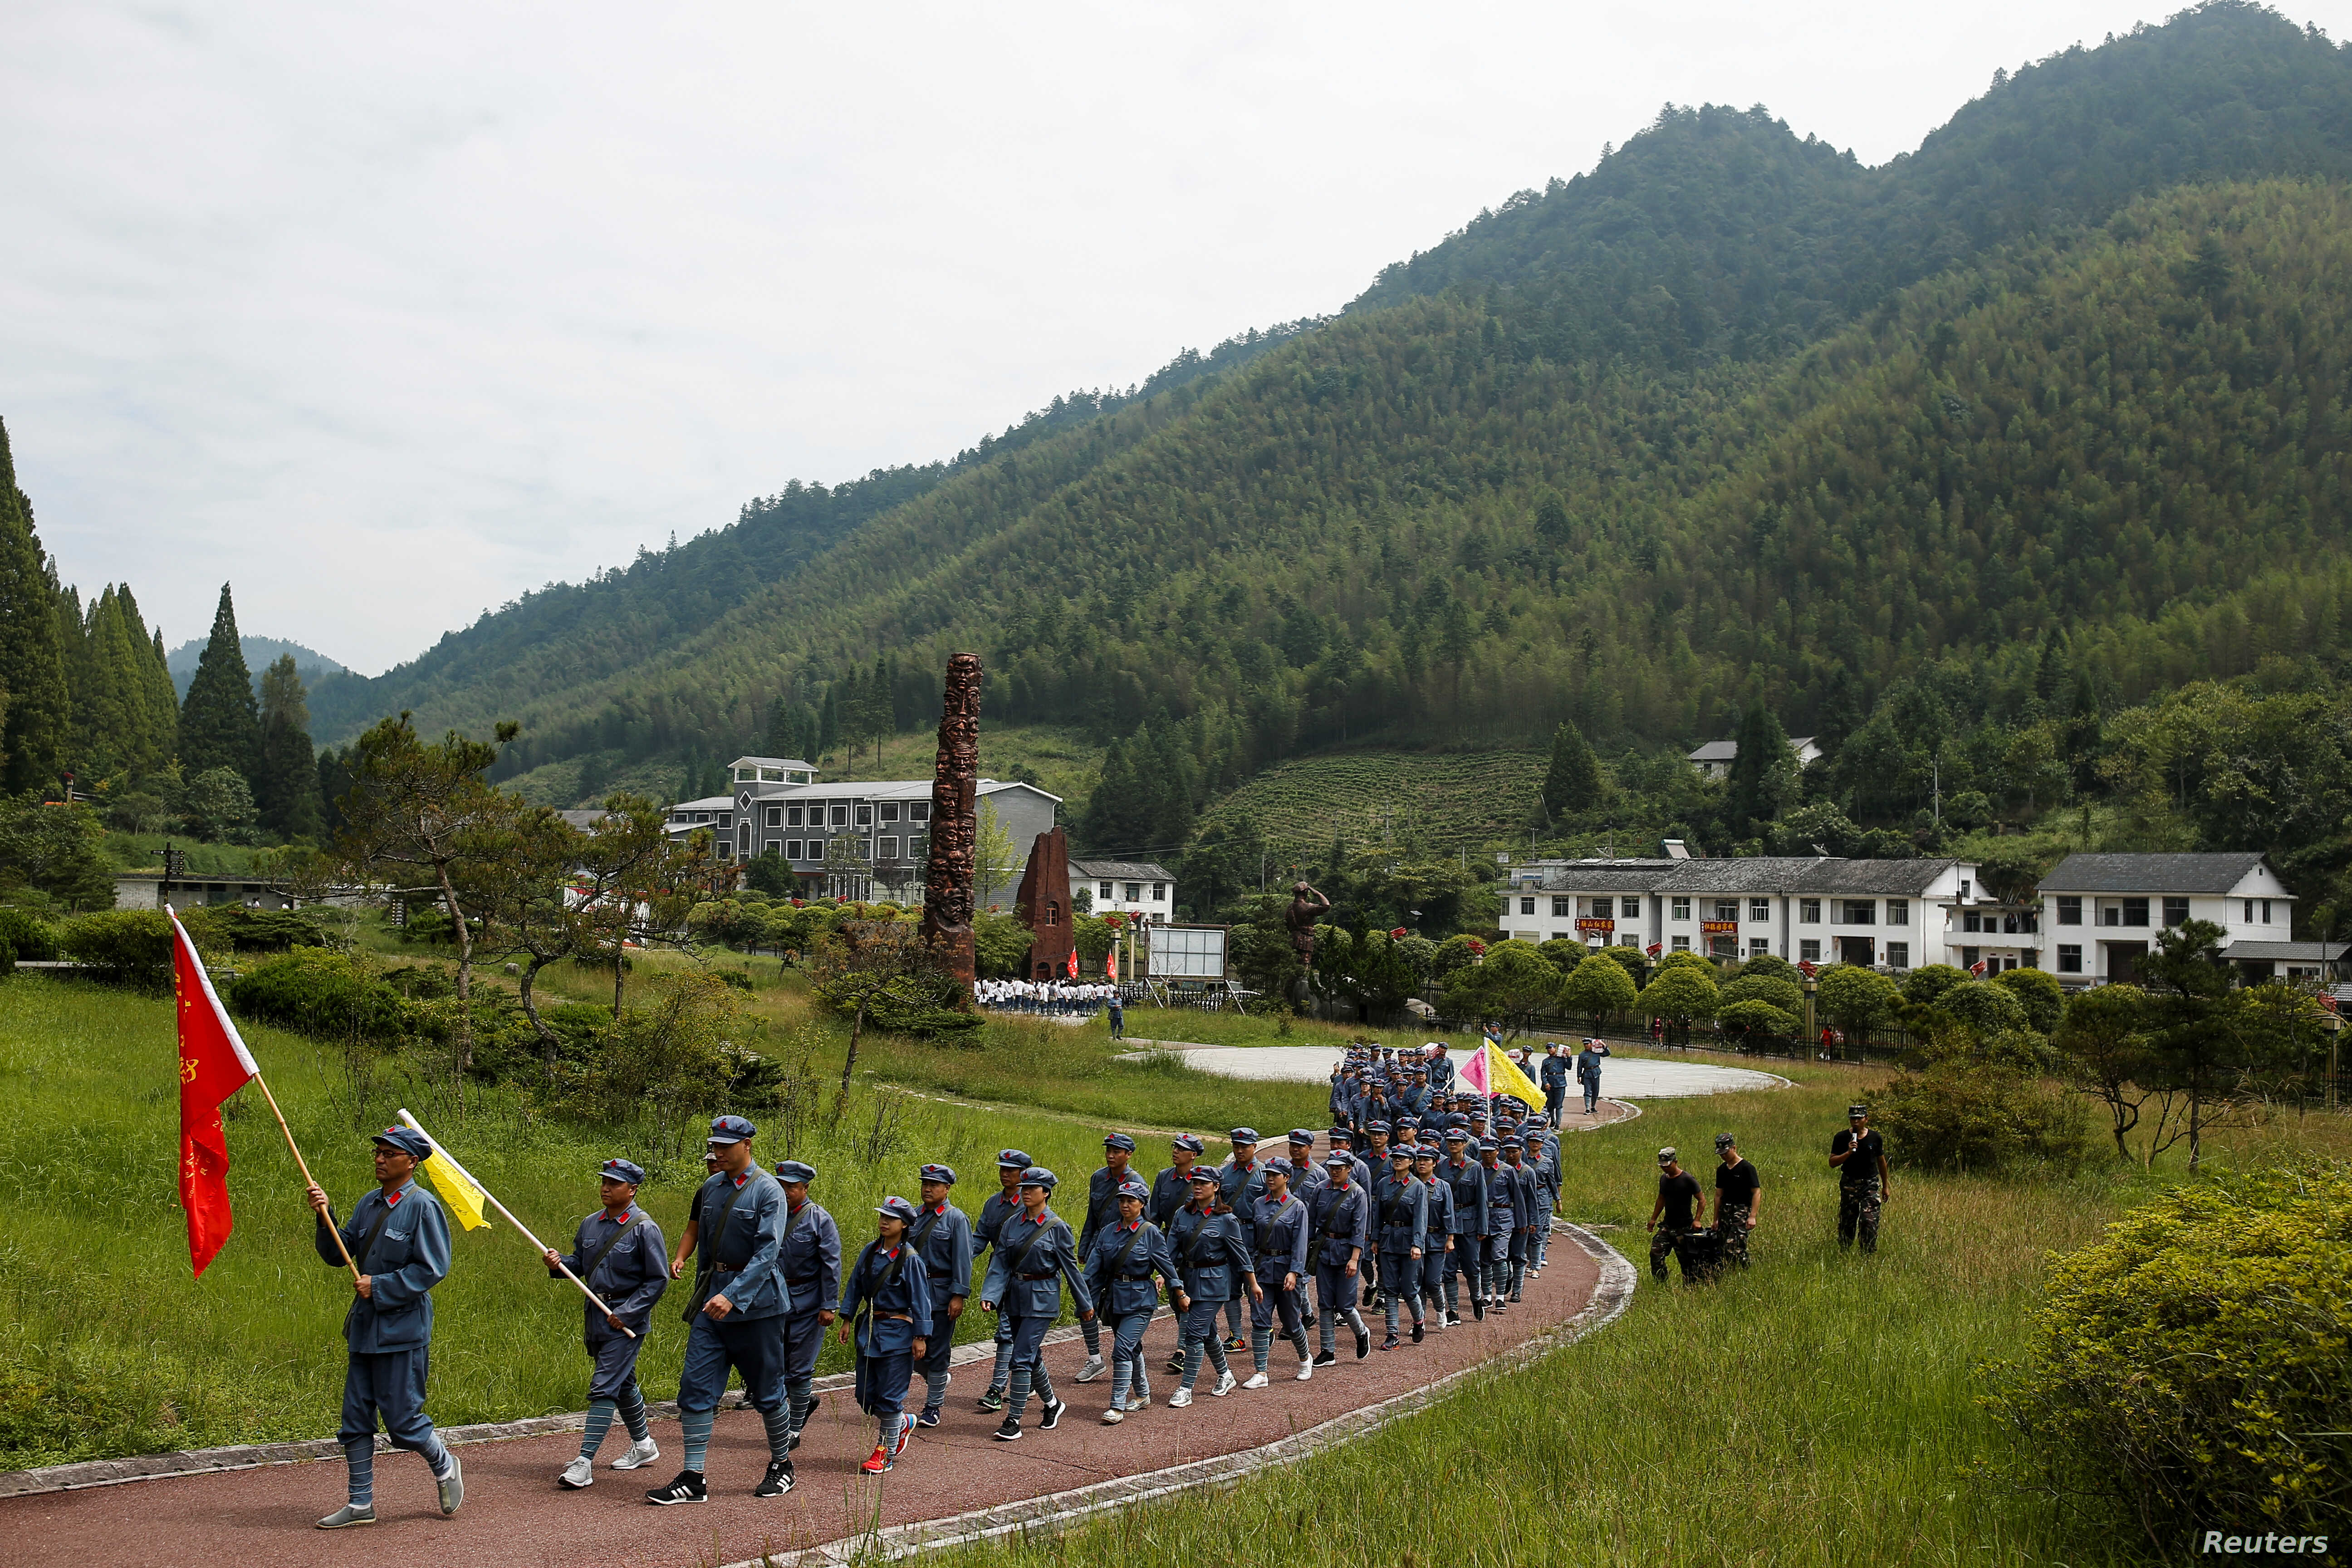 Ideological Boot Camp Lets Participants Relive China's Long March